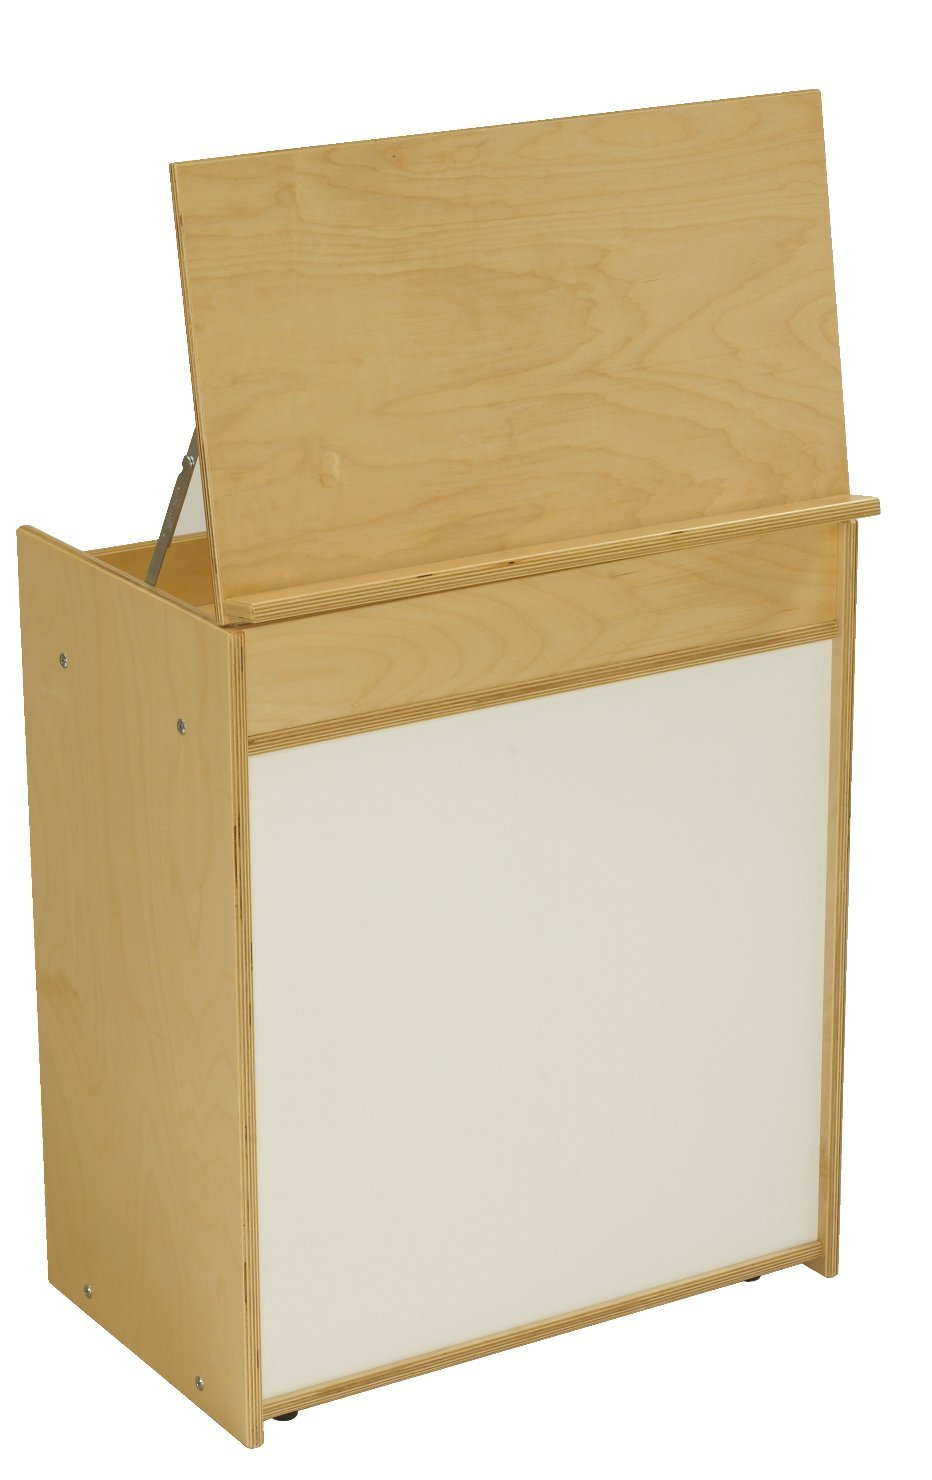 Childcraft 1526576 ABC Furnishings Language Center, 30.25'' Height, 14.5'' Width, 23.75'' Length, Natural Wood